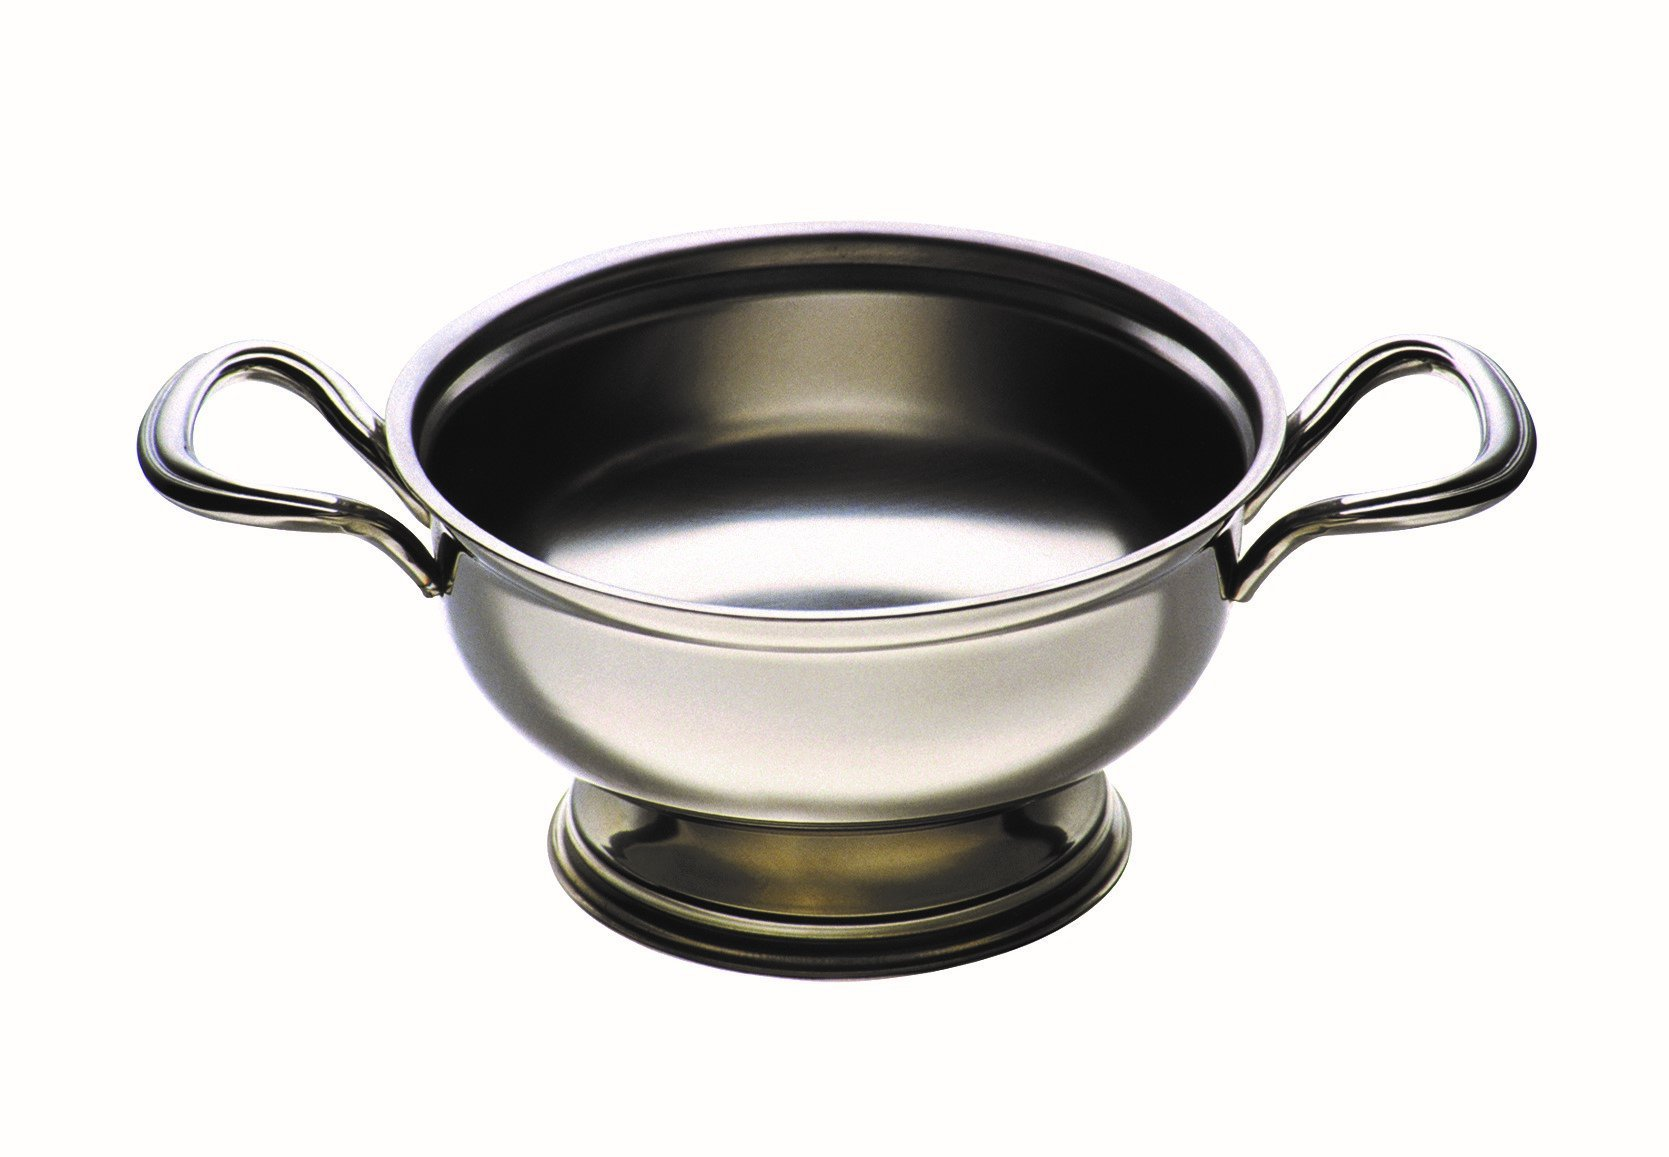 Mepra Palace Soup Tureen without Lid, 20cm